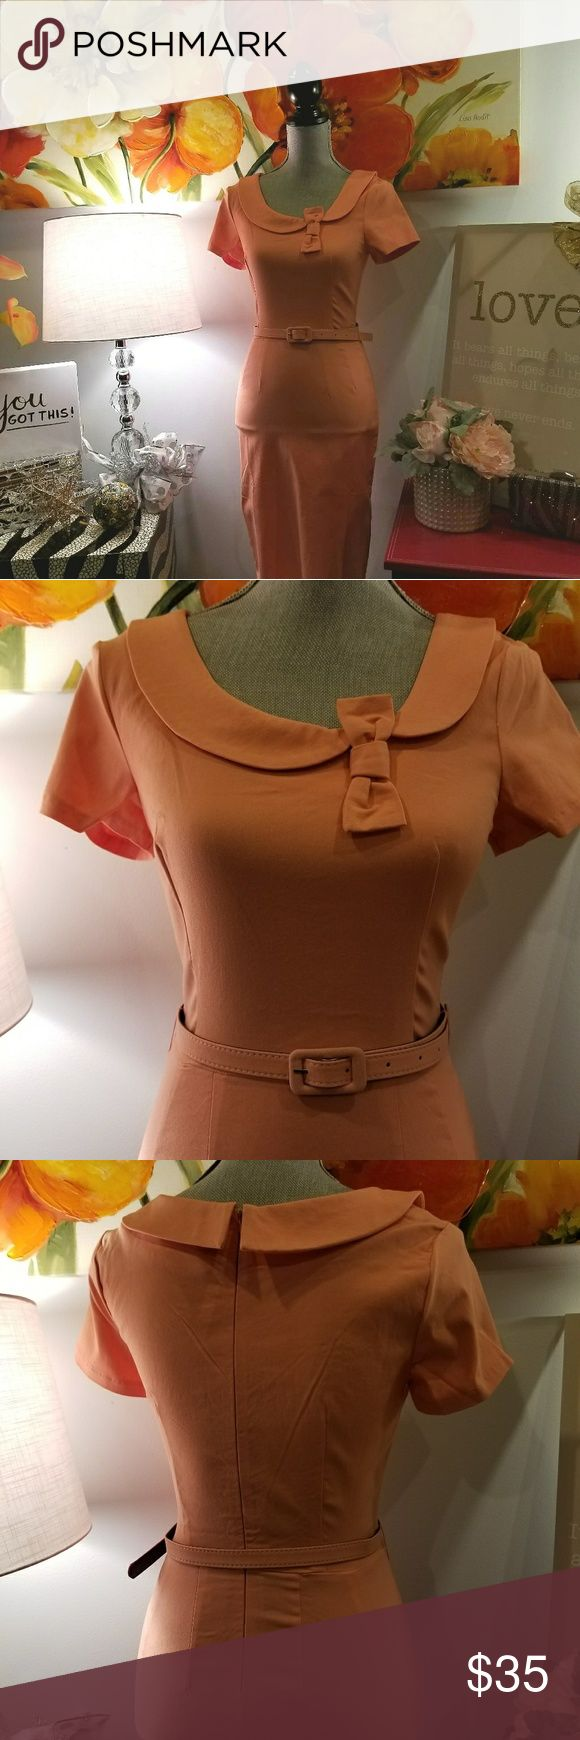 """NWT Vintage Pinup Dress Short sleeved, collared, belted dress. Little bow accent. Split up the back of skirt. This form fitting dress flatters the figure. The fabric blend is rayon, cotton and spandex. Color appears orange in the pictures but it is actually a salmon pink. Measurements: waist-14, bust-17; hips-18; length-42"""". Very pretty dress. Dresses Midi"""